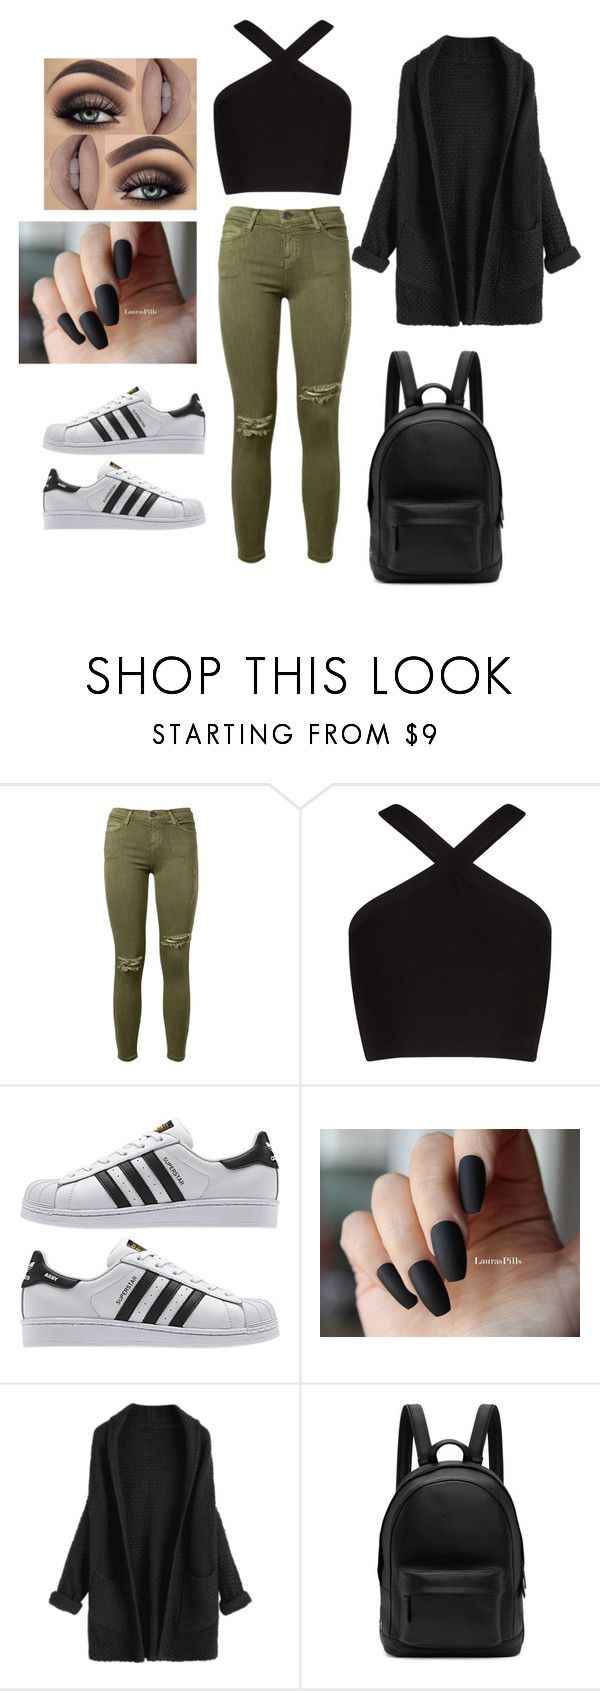 """""""Untitled #182"""" by jessiecary on Polyvore featuring Current/Elliott, BCBGMAXAZRIA and PB 0110"""